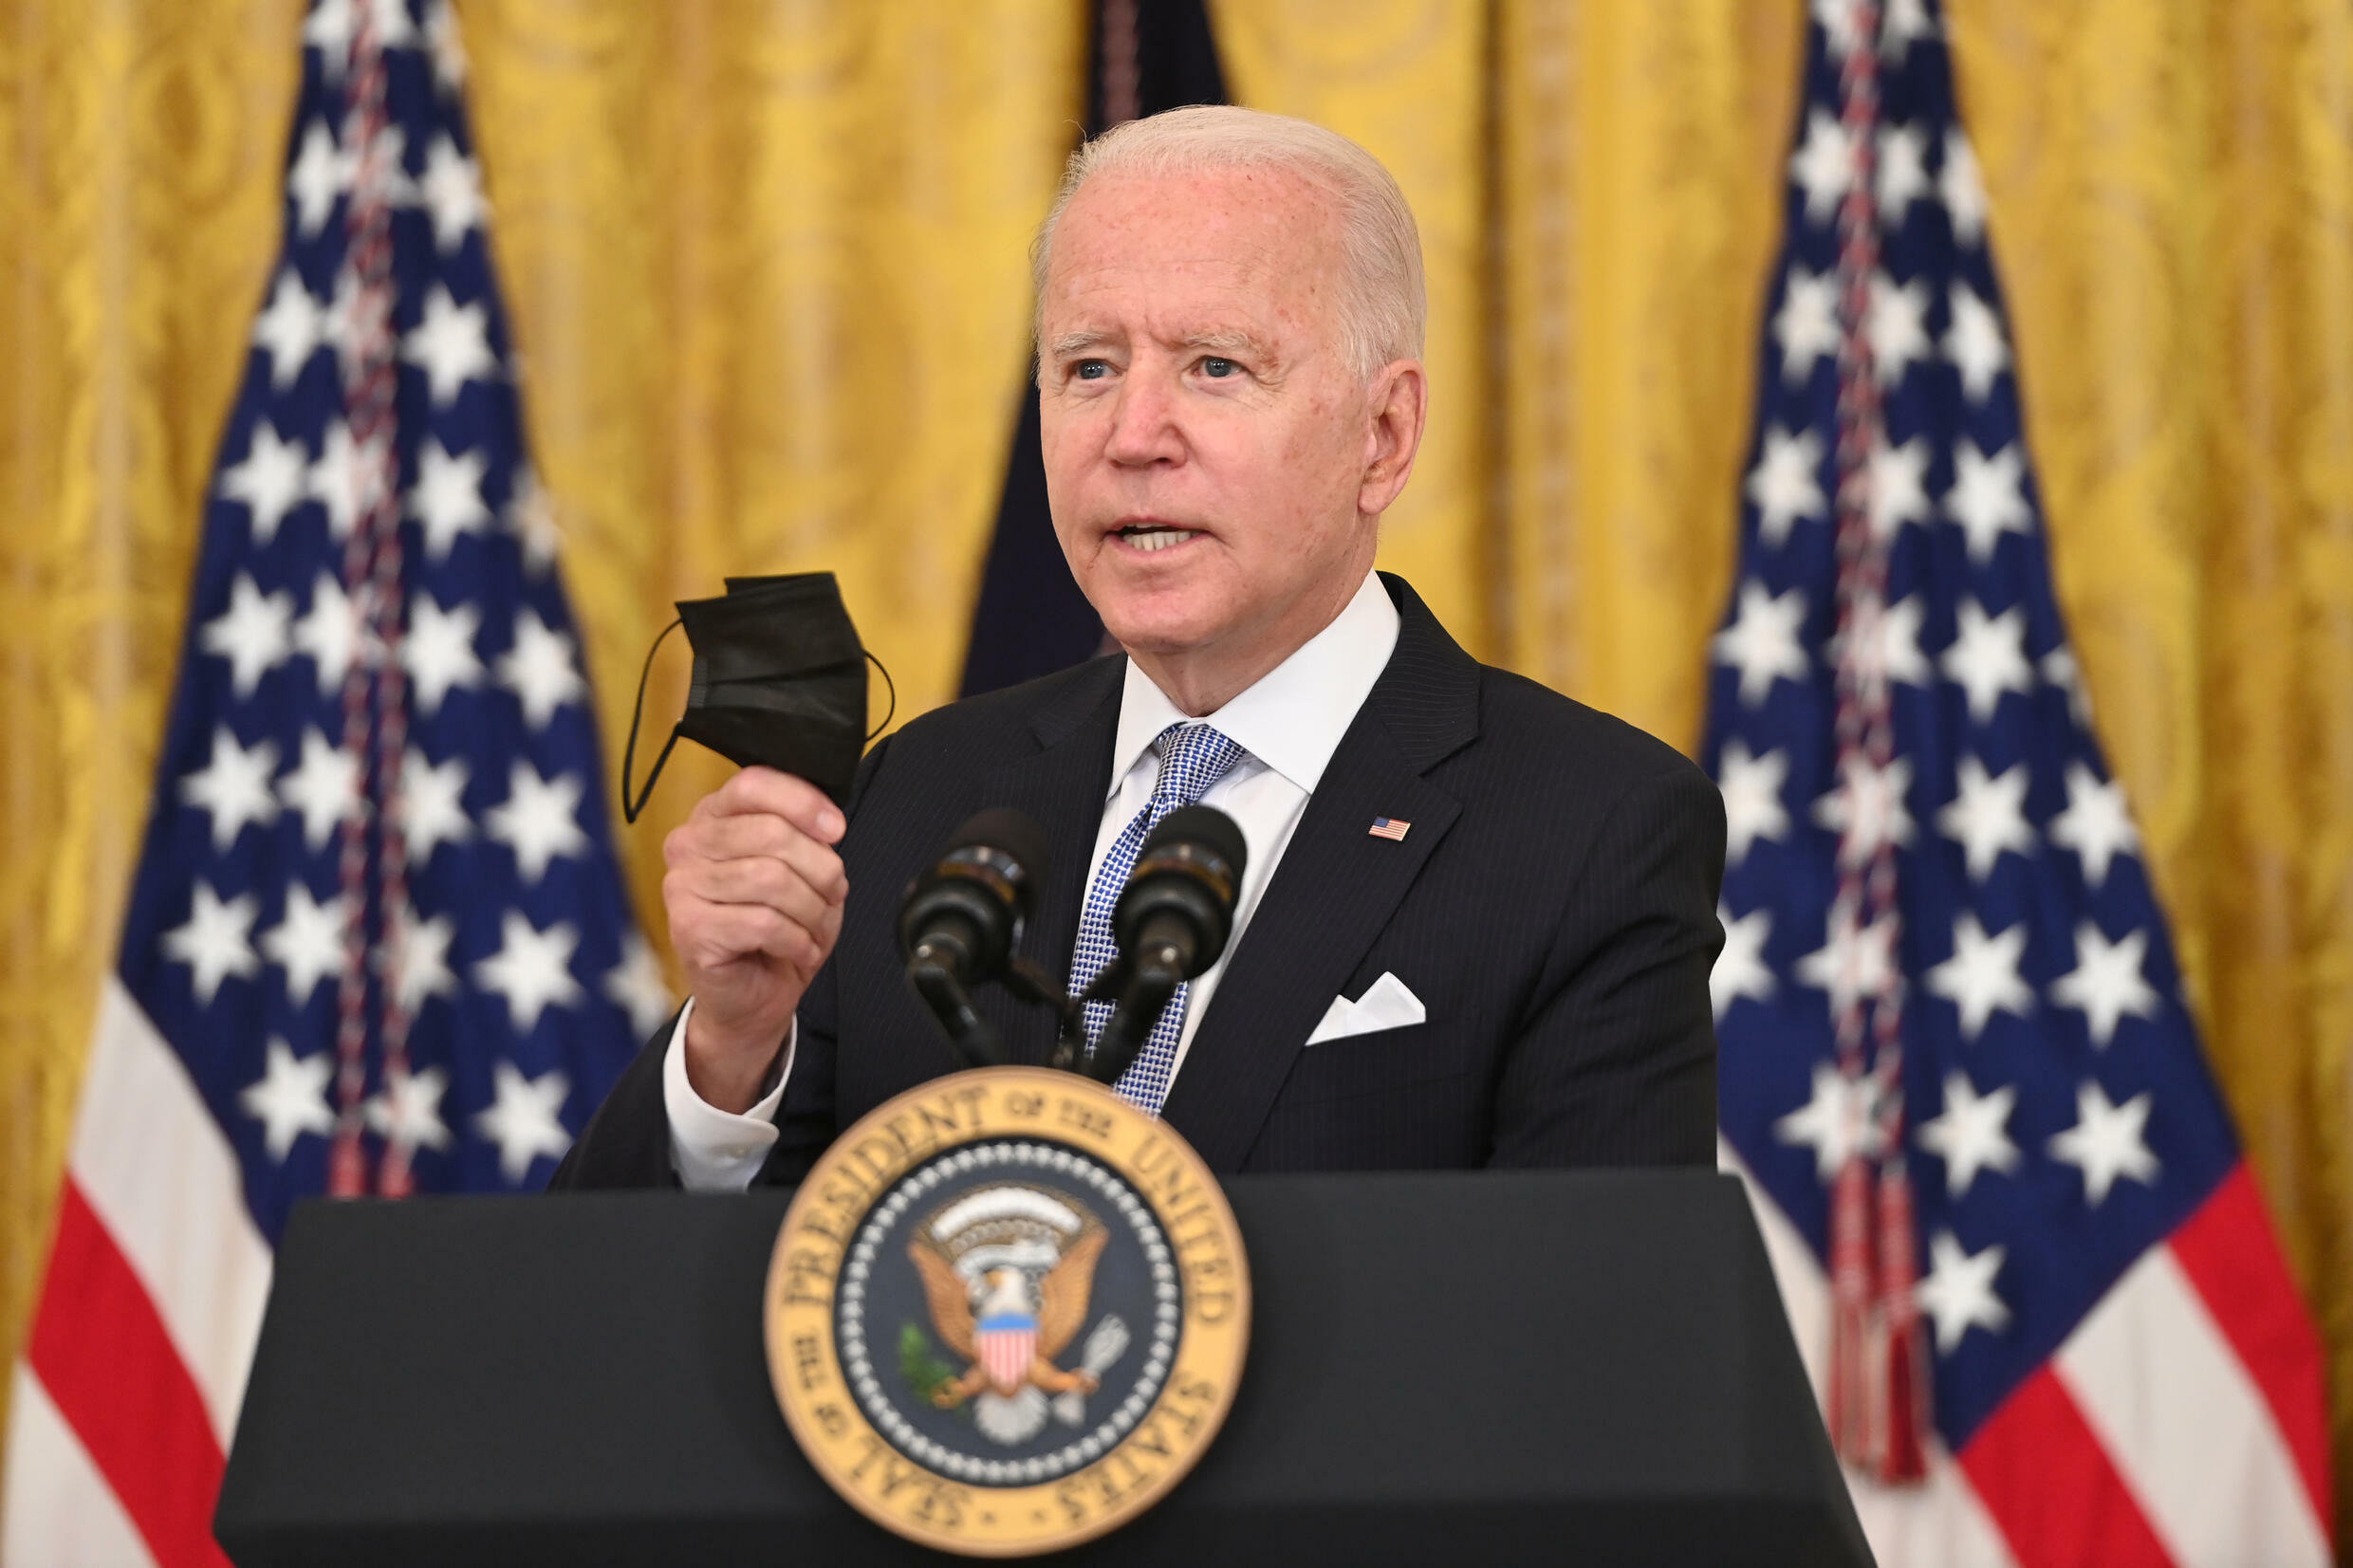 US President Joe Biden speaks about Covid-19 vaccinations at the White House